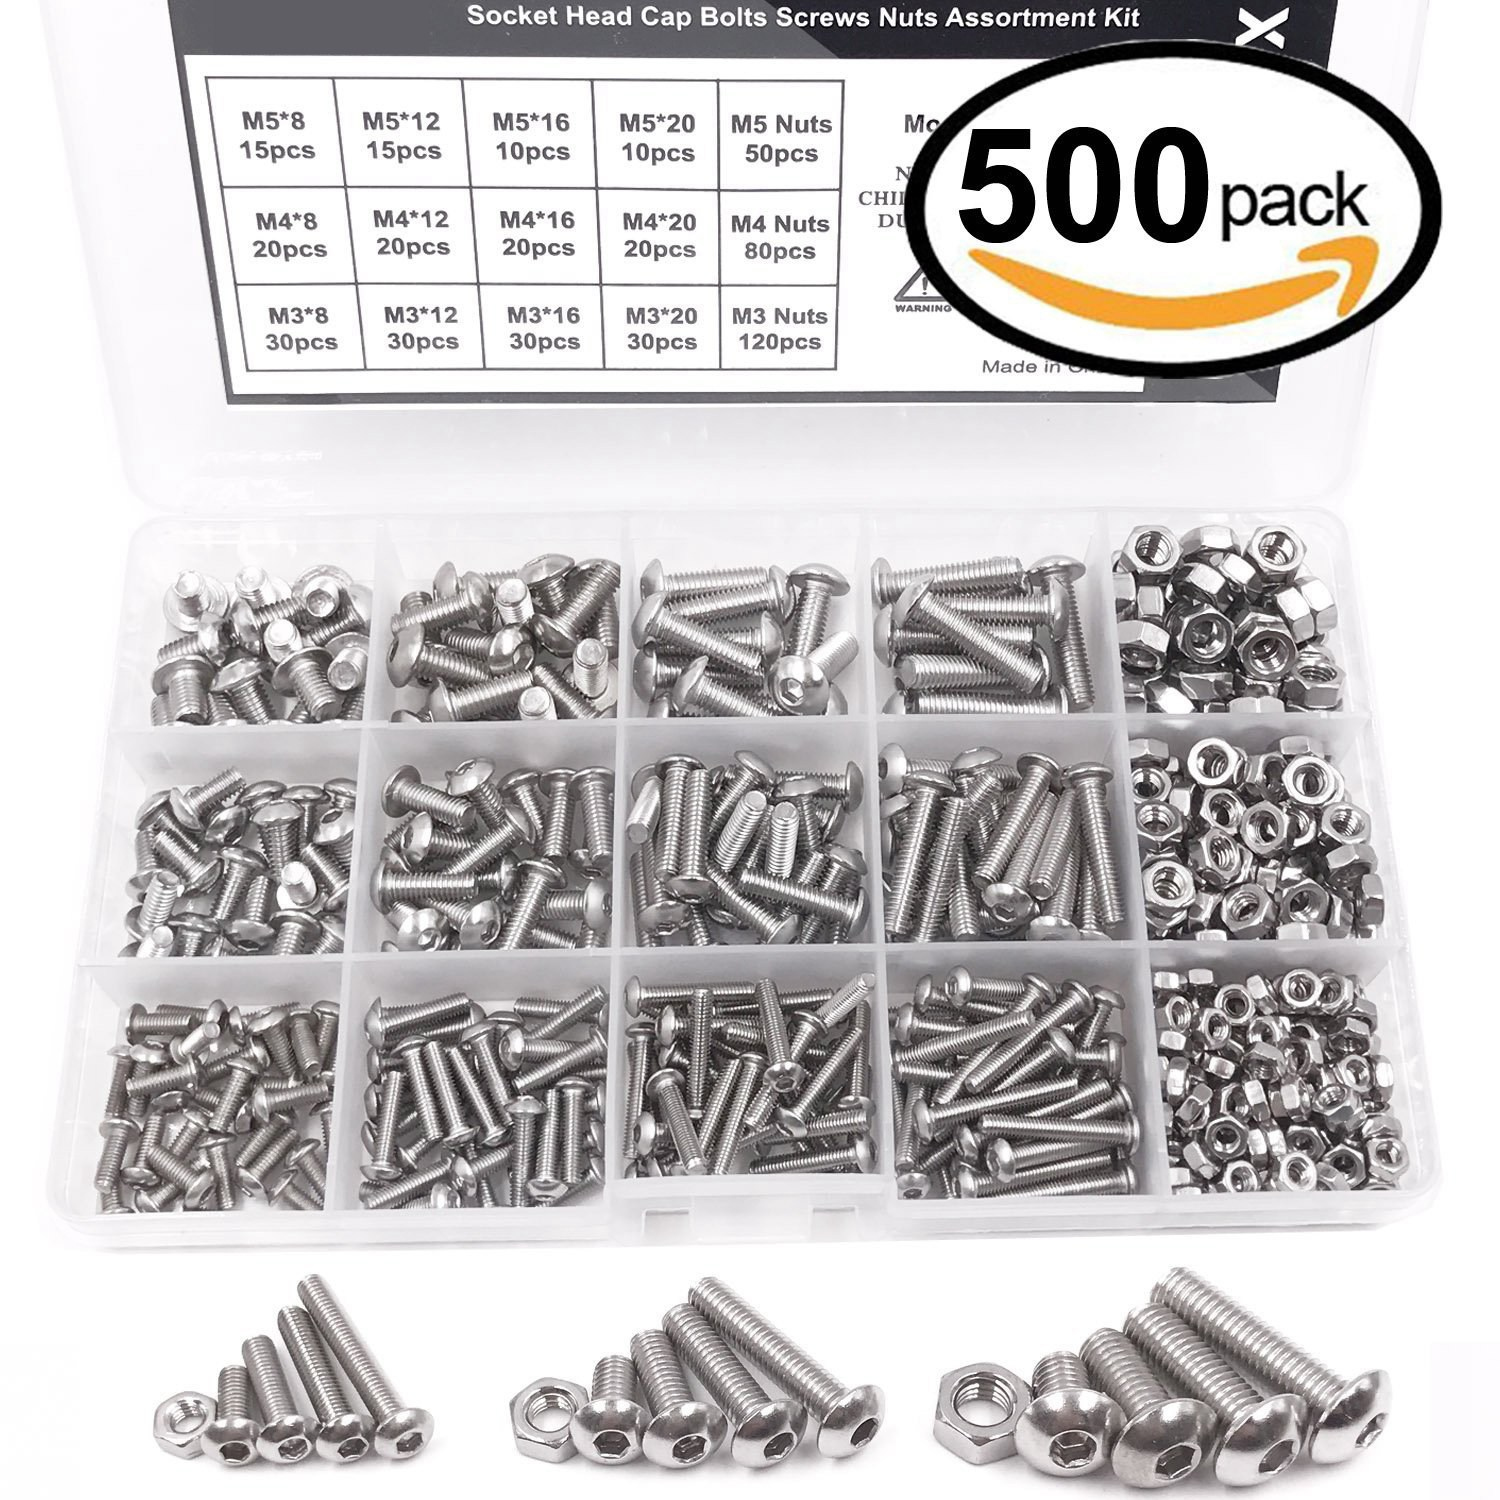 Nuts /& Washers for HONDA CM 125 C A2 Stainless Steel 201 Qty Allen Bolts